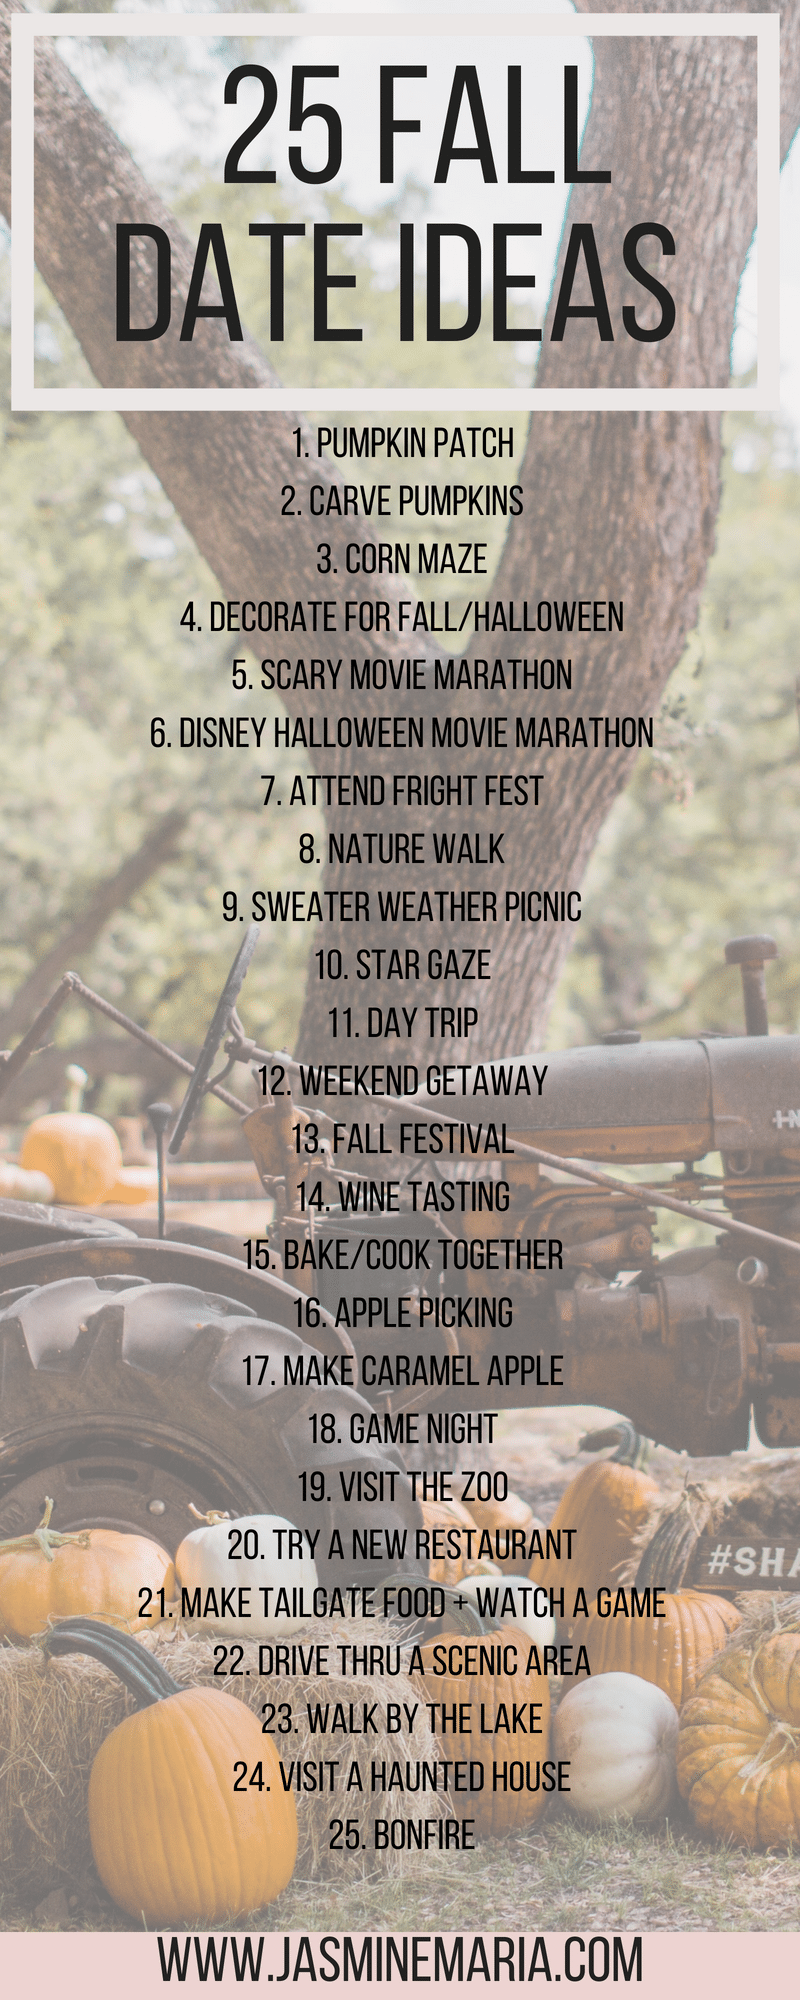 25 Fall Date Ideas - Jasmine Maria